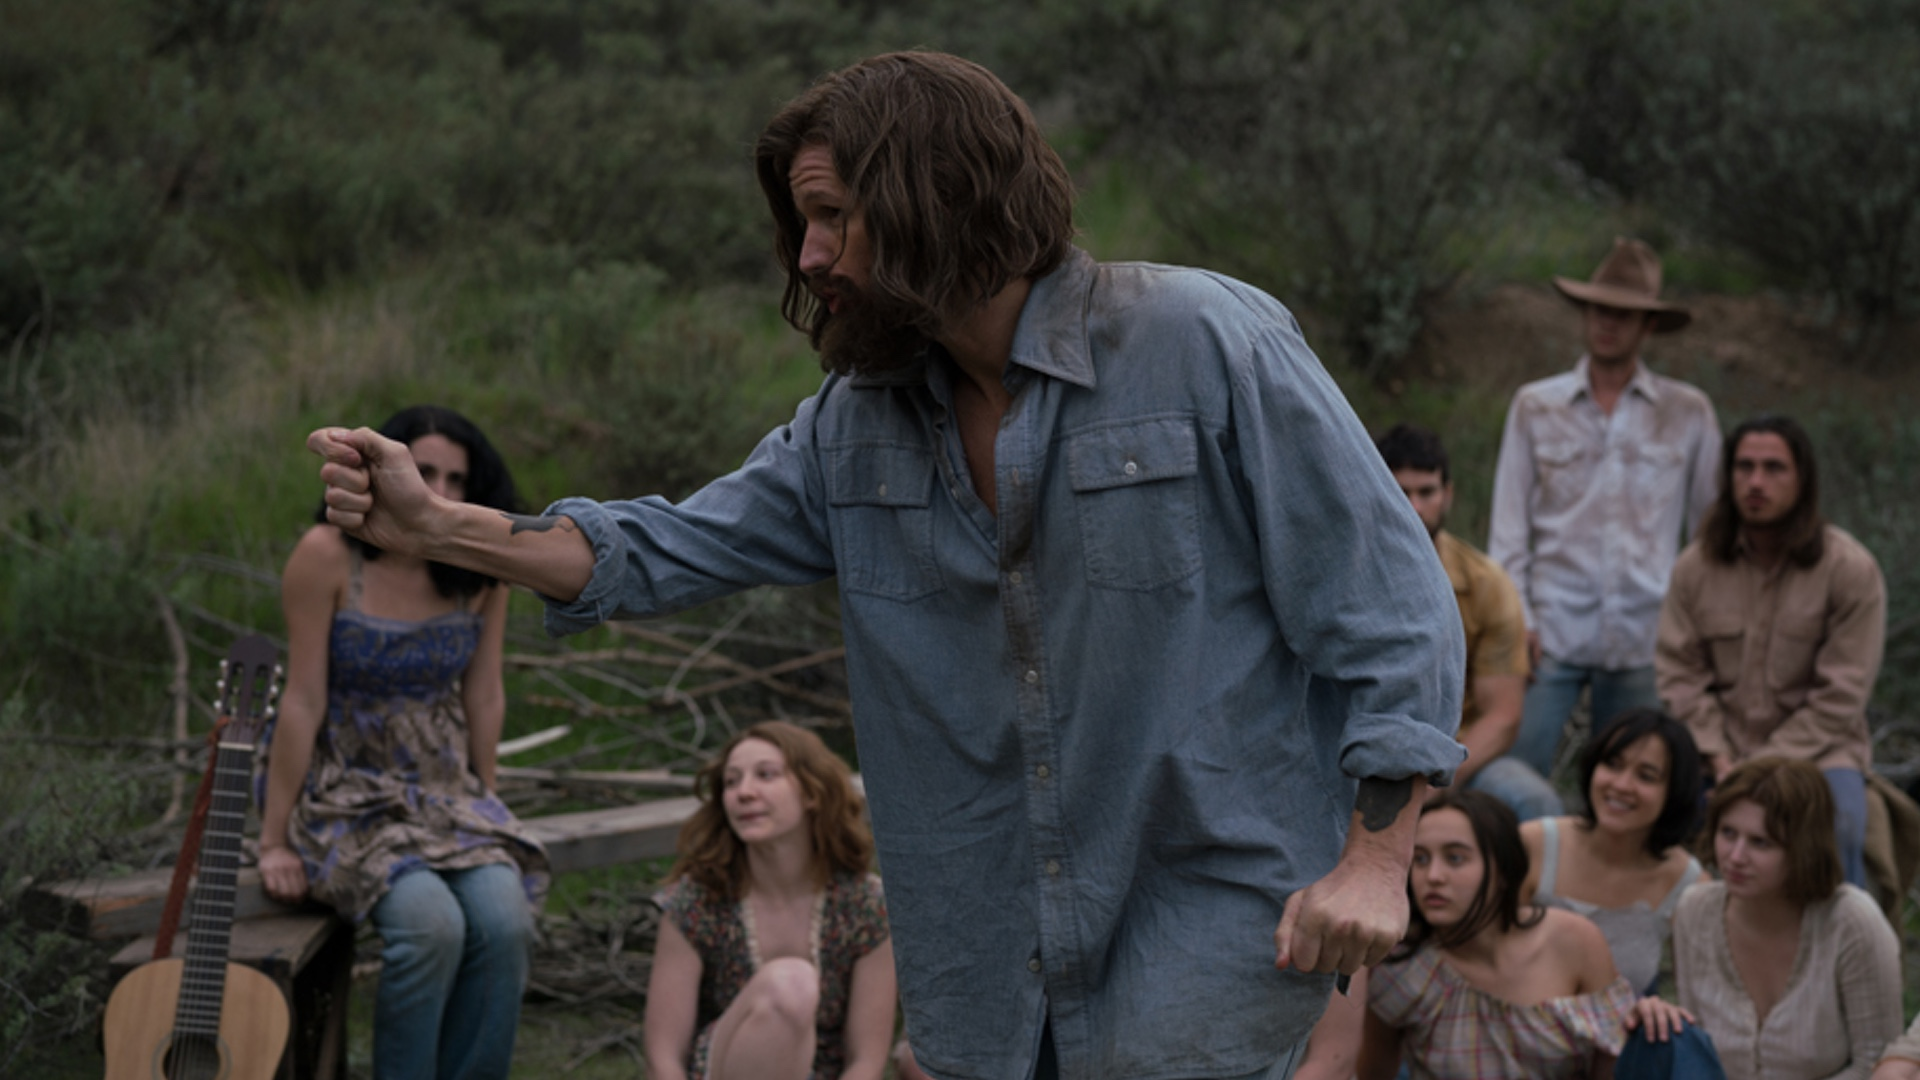 first-photo-of-matt-smith-as-charles-manson-in-the-film-charlie-says-social.jpg